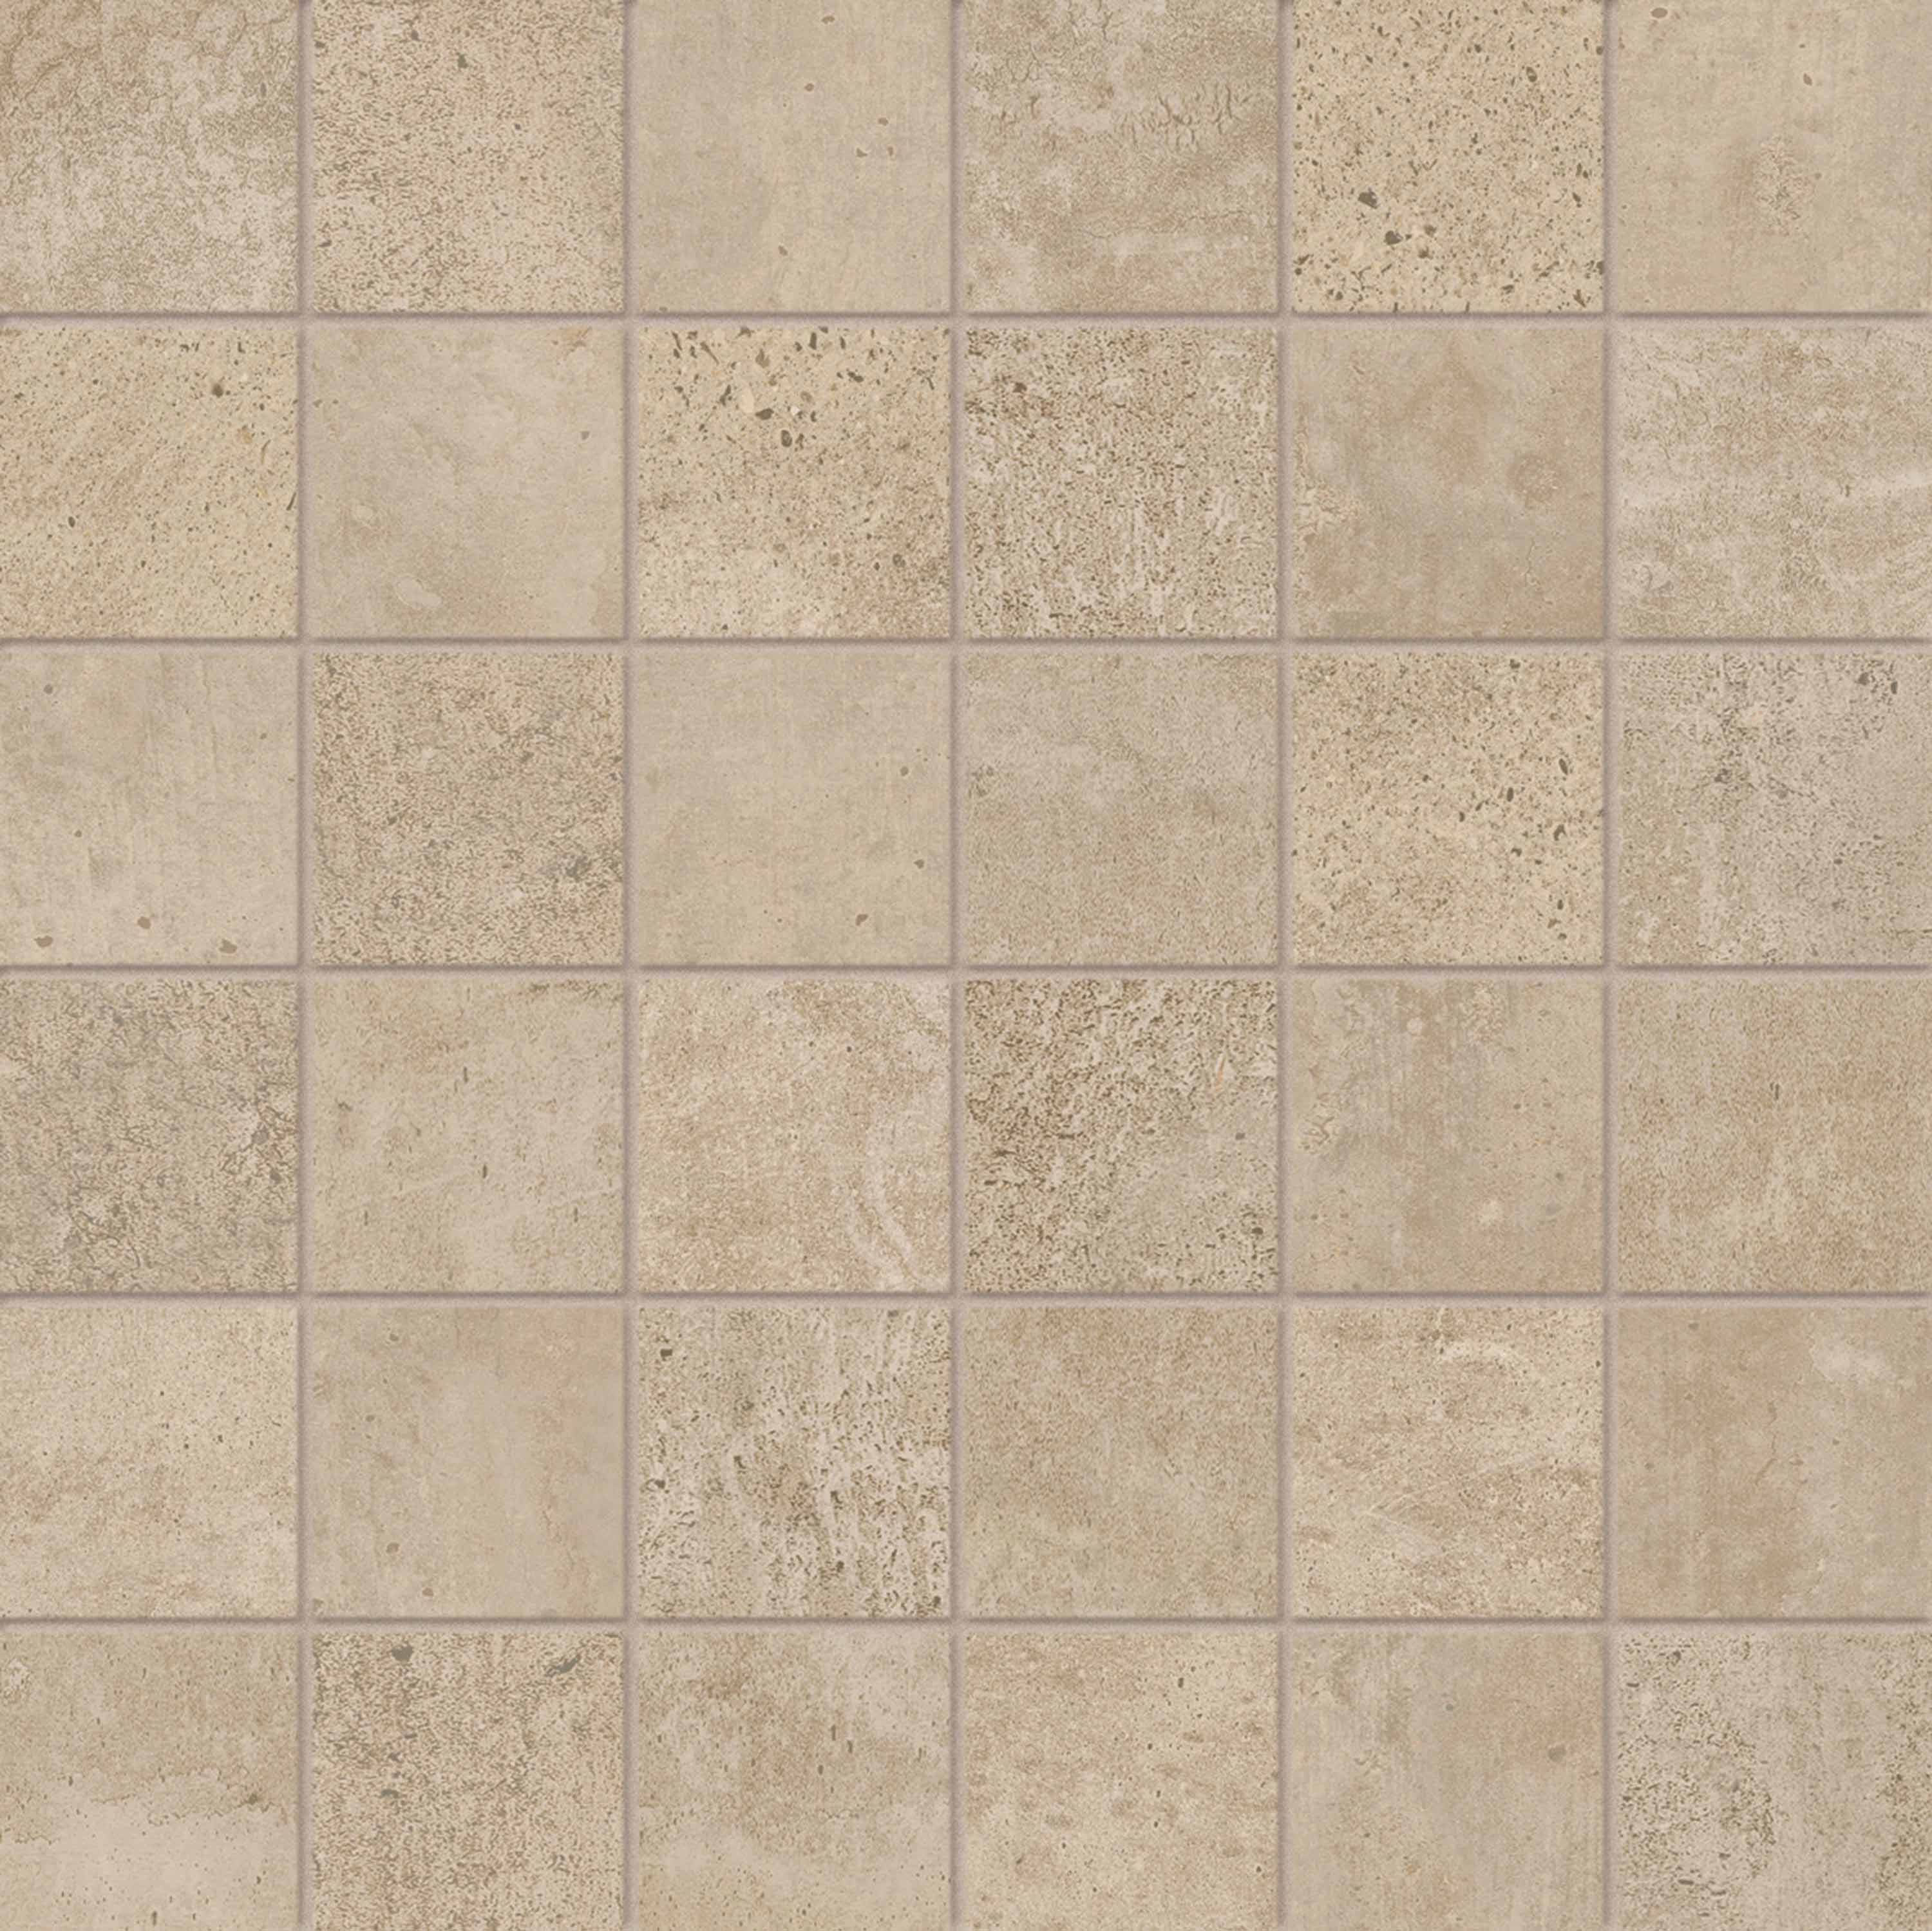 New Arrival Imported Designer Wall Tile 300x600mm: Porcelain Mosaics And Trims - Carmel Stone Imports